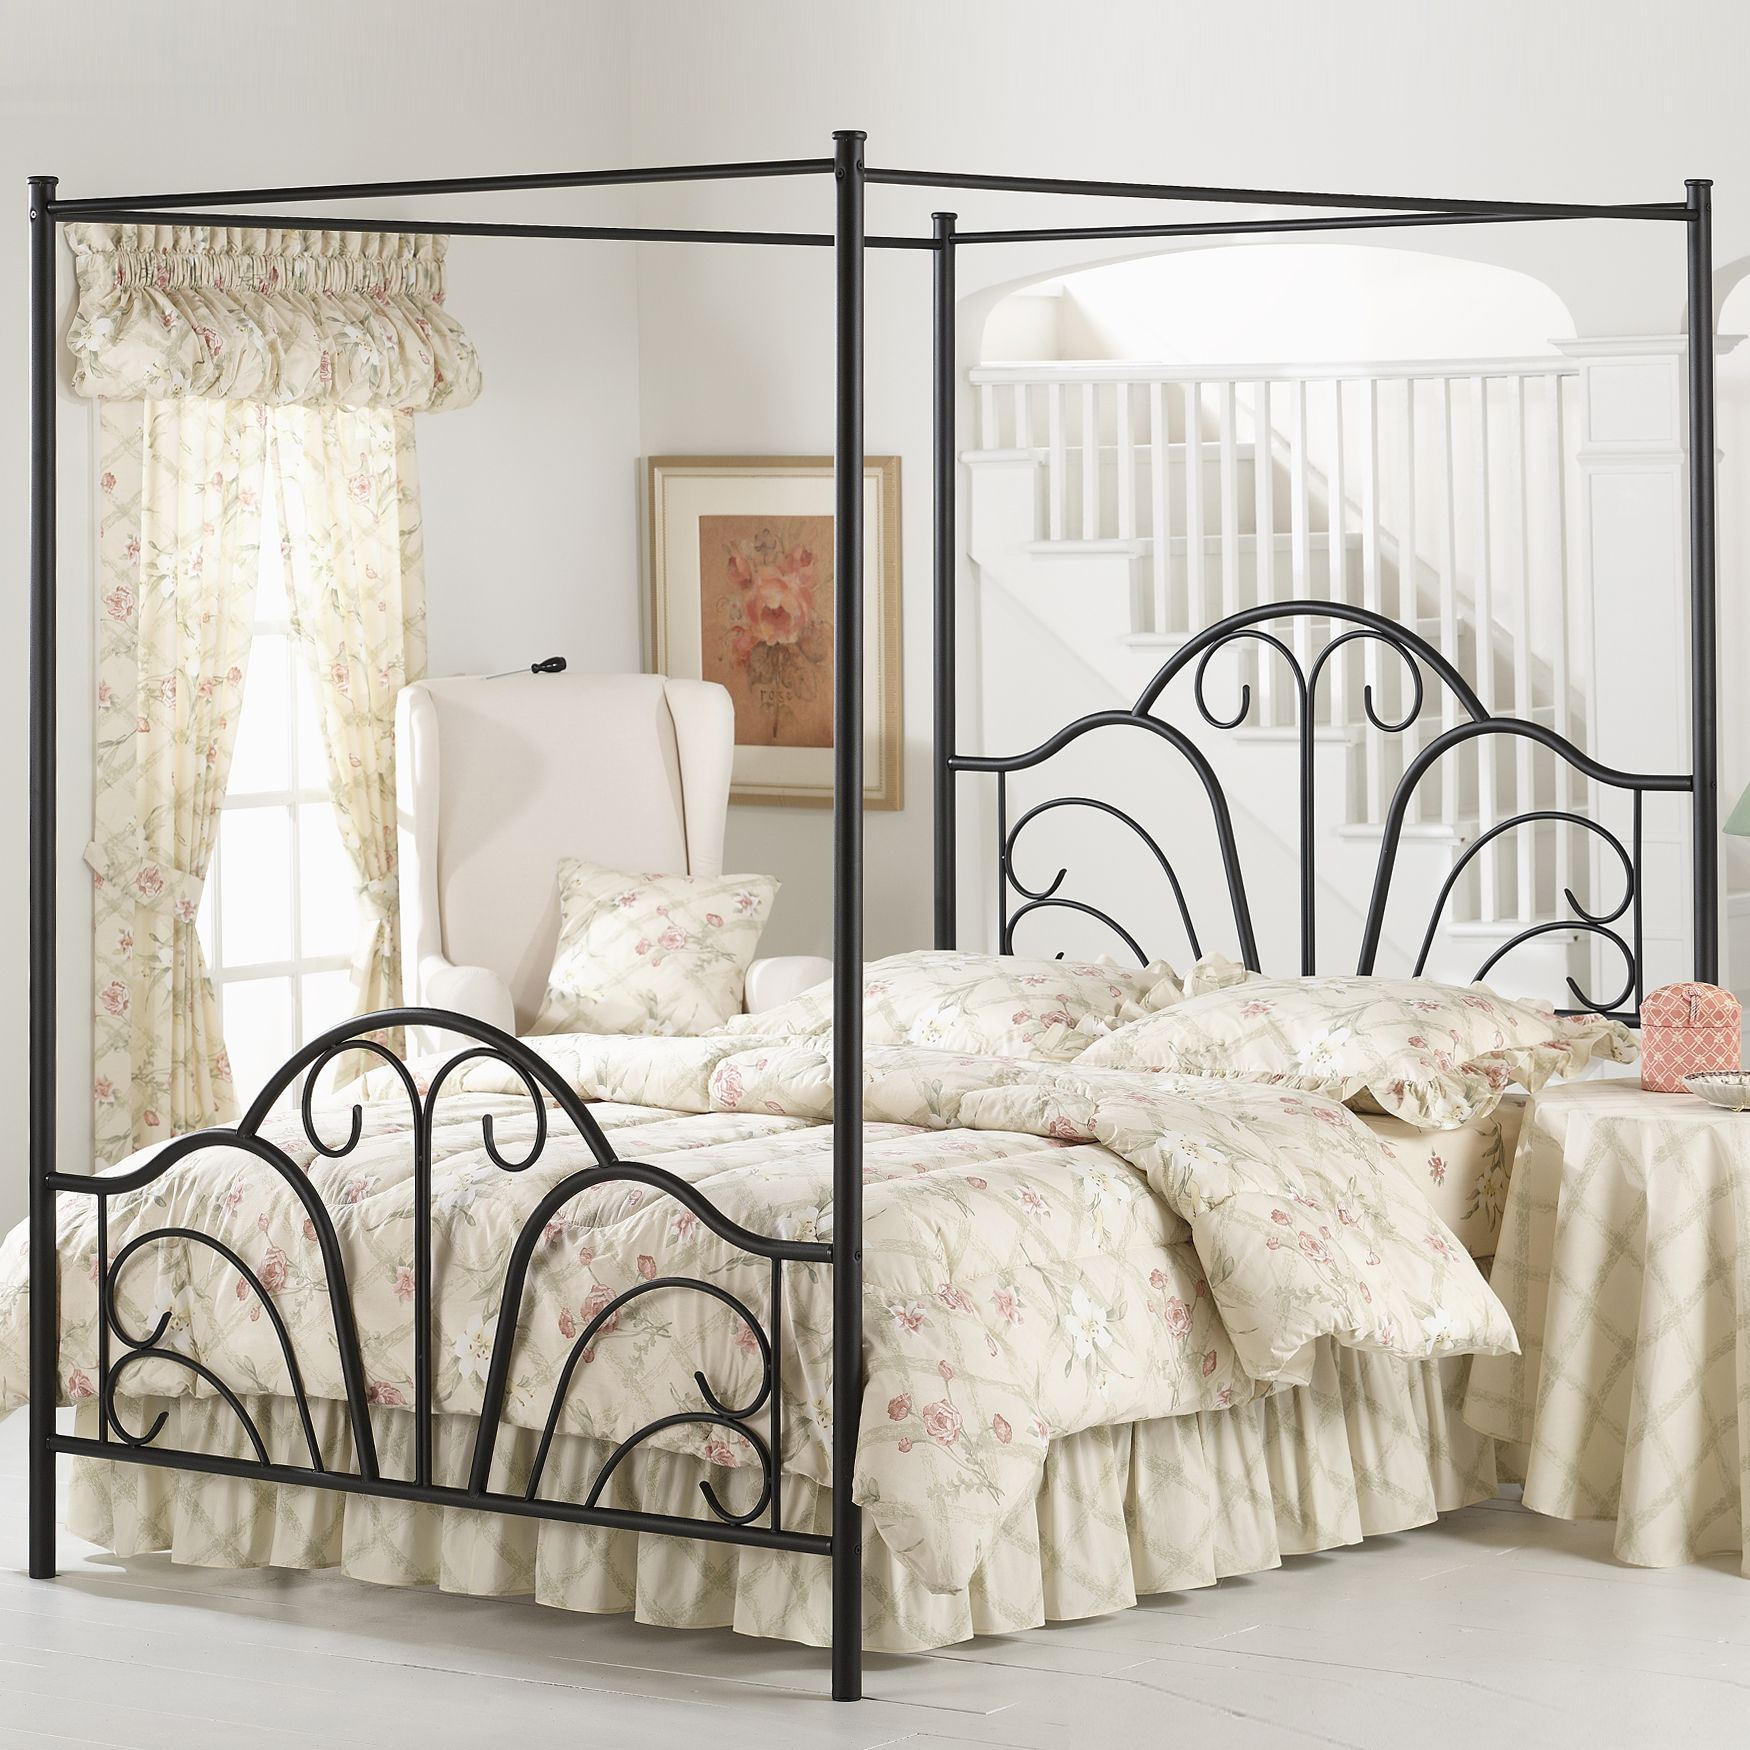 Queen Bed with Bed Frame, 83½'Lx60¾'Wx81'H,